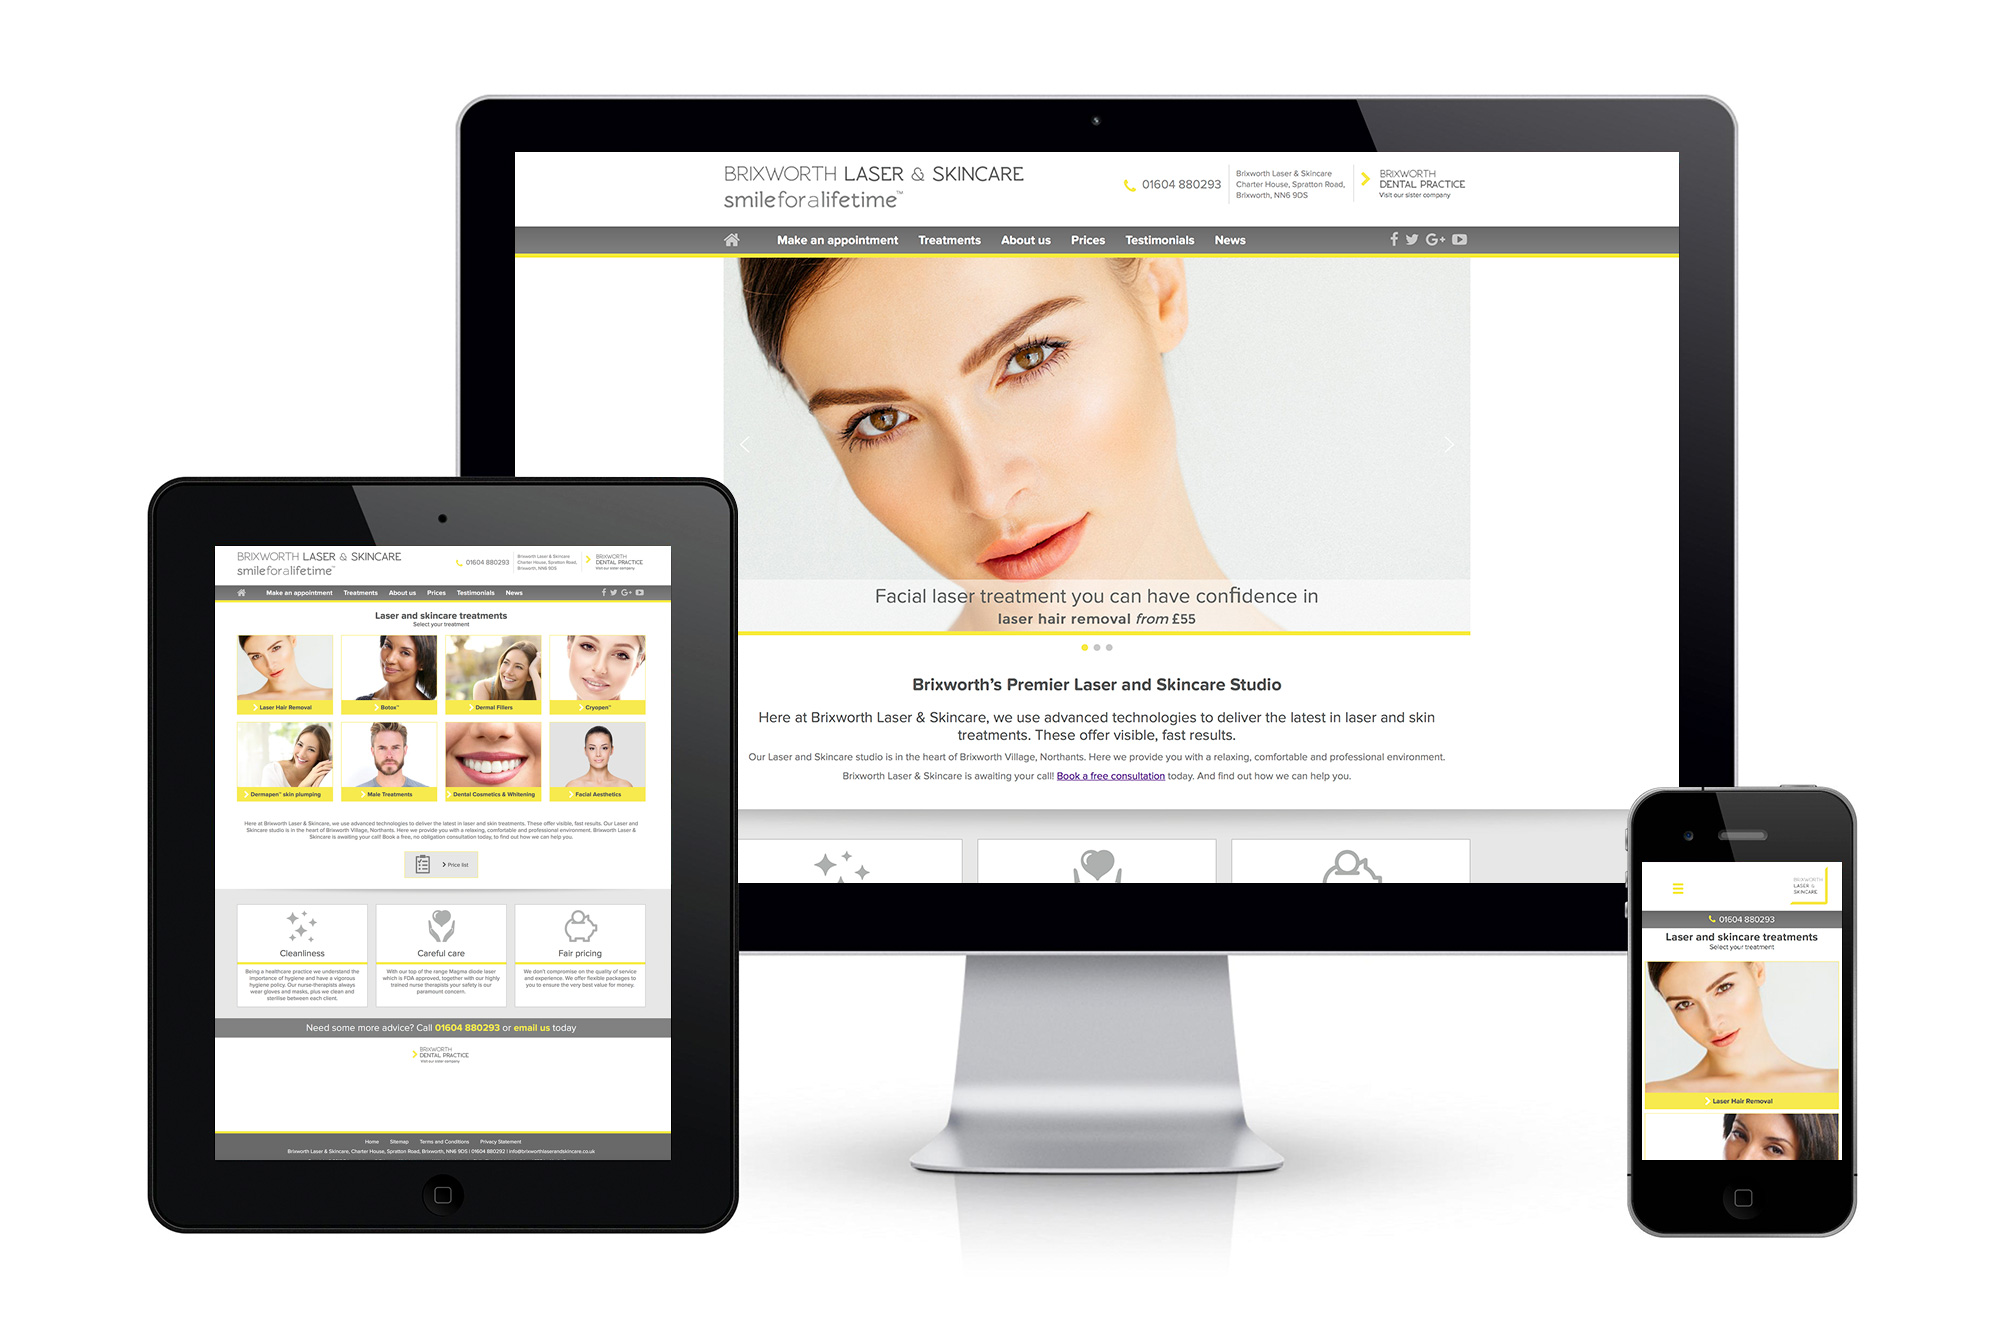 Brixworth Laser and Skincare website image